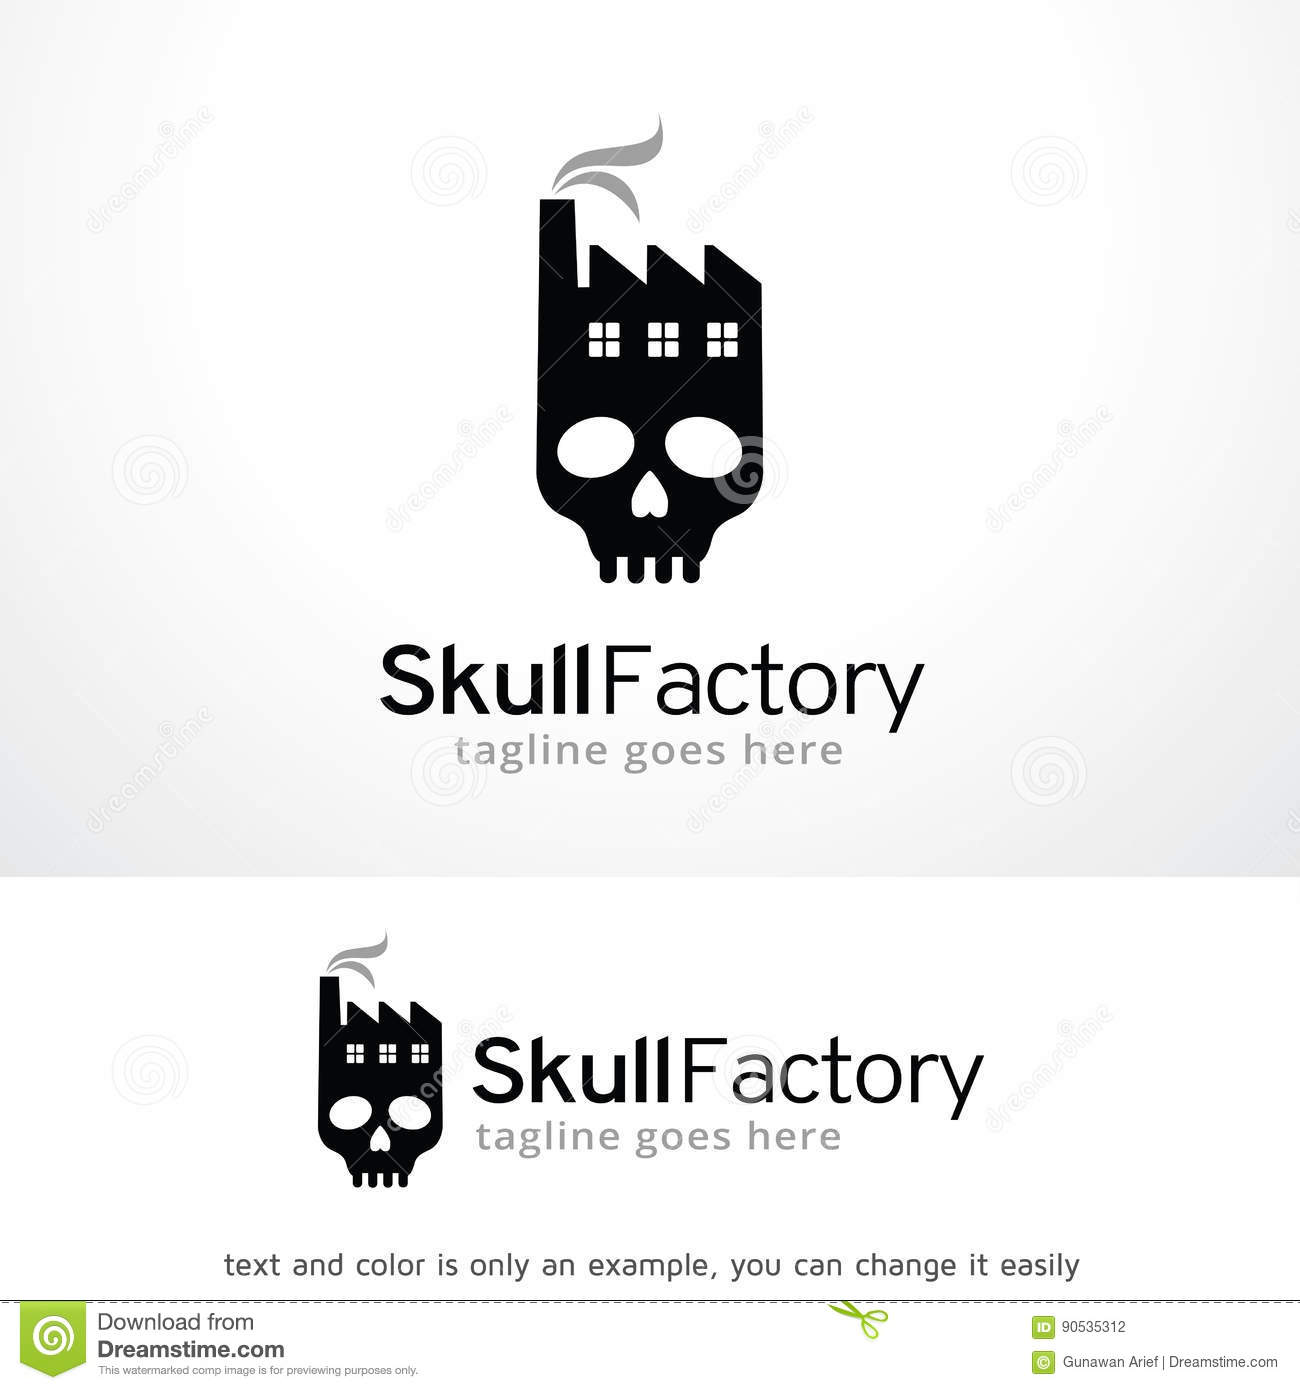 Skull factory logo template design vector emblem design concept skull factory logo template design vector emblem design concept creative symbol icon buycottarizona Images